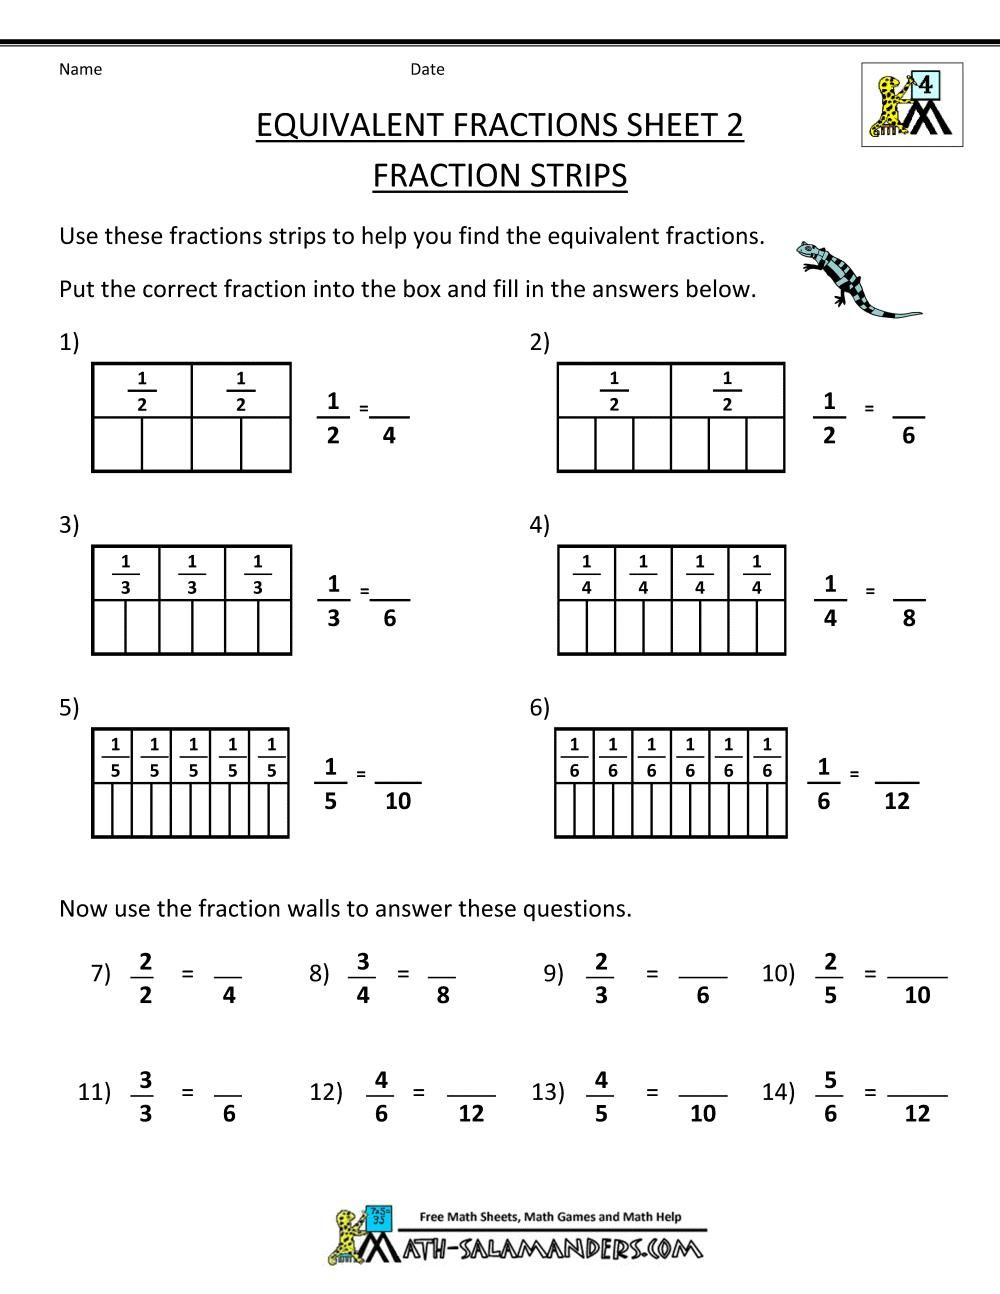 18 4th Grade Free Printable Math Worksheets In 2020 Math Fractions Worksheets Math Fractions Fractions Worksheets